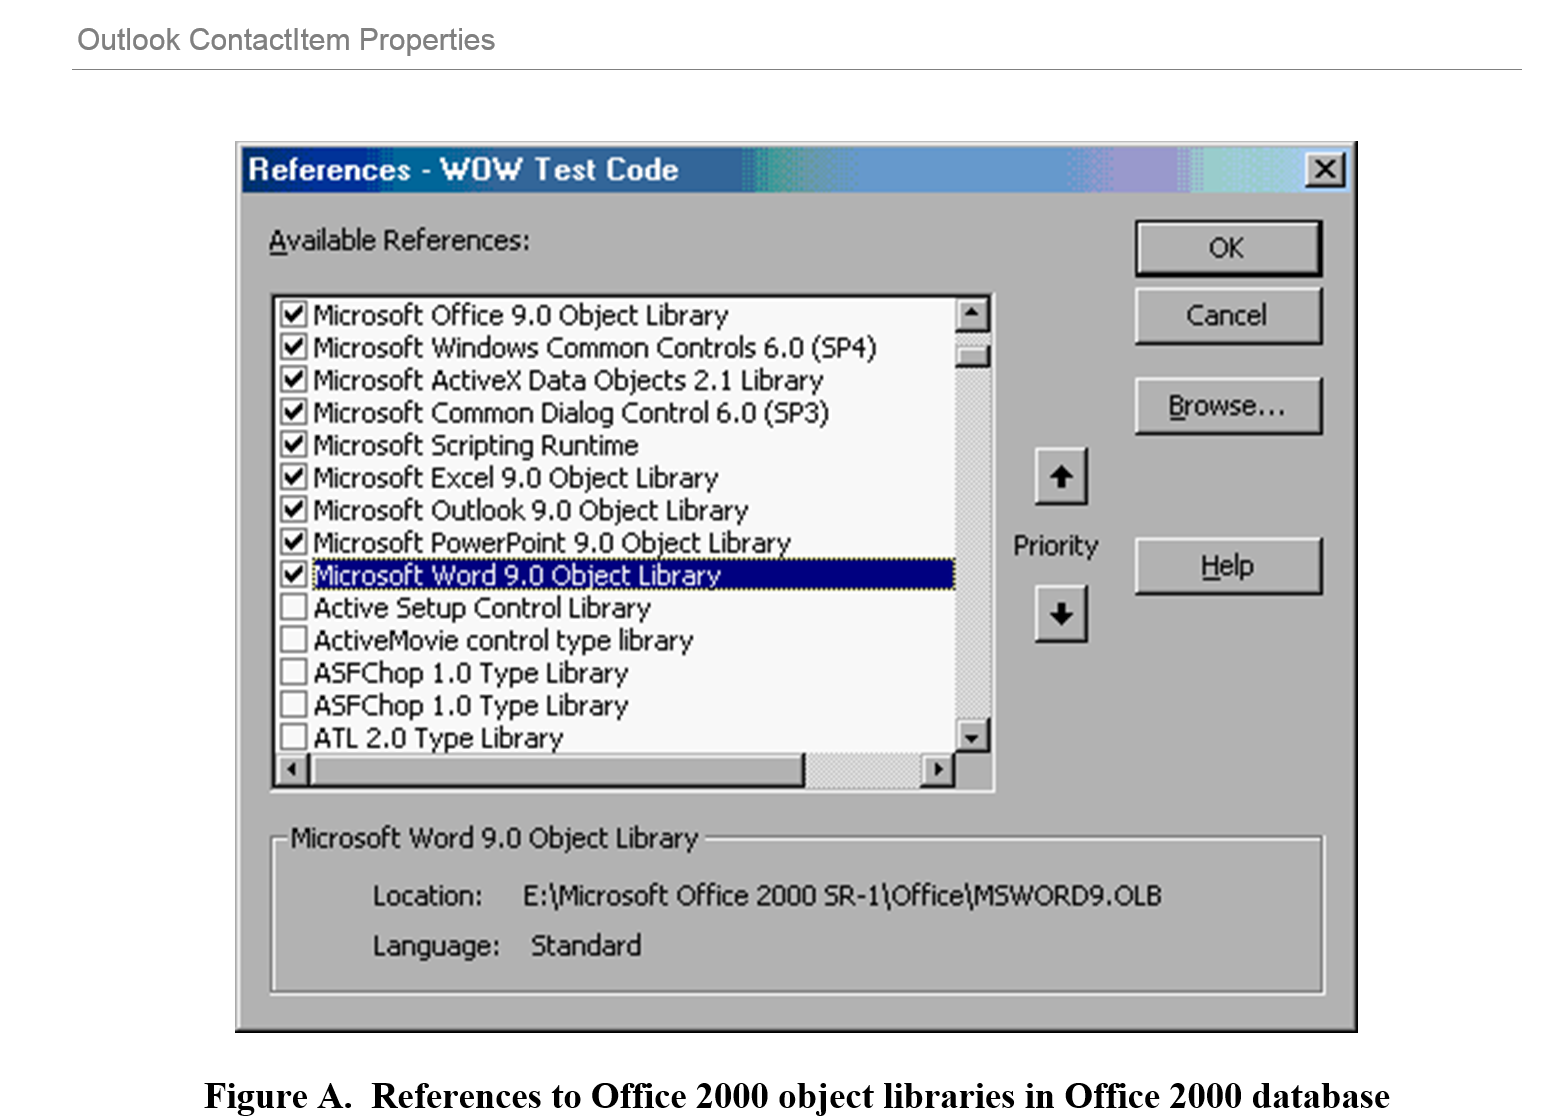 Figure A.  References to Office 2000 object libraries in Office 2000 database